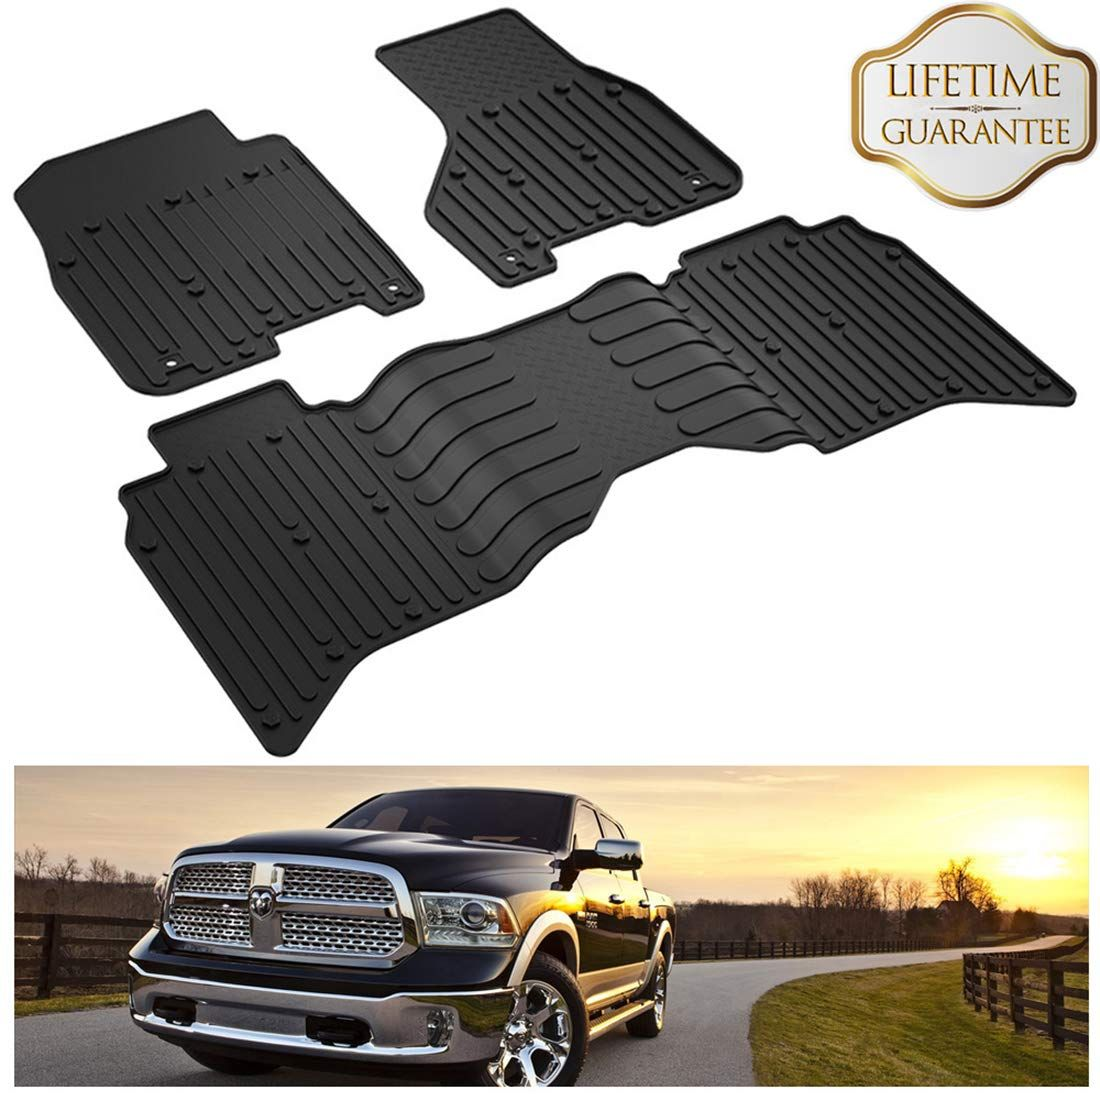 Kiwi Master Floor Mats Compatible For Dodge Ram 1500 5500 Crew Cab 2013 2017 All Weather Protector Tpe Front And Rear Row Flo Floor Liners Crew Cab Cargo Liner